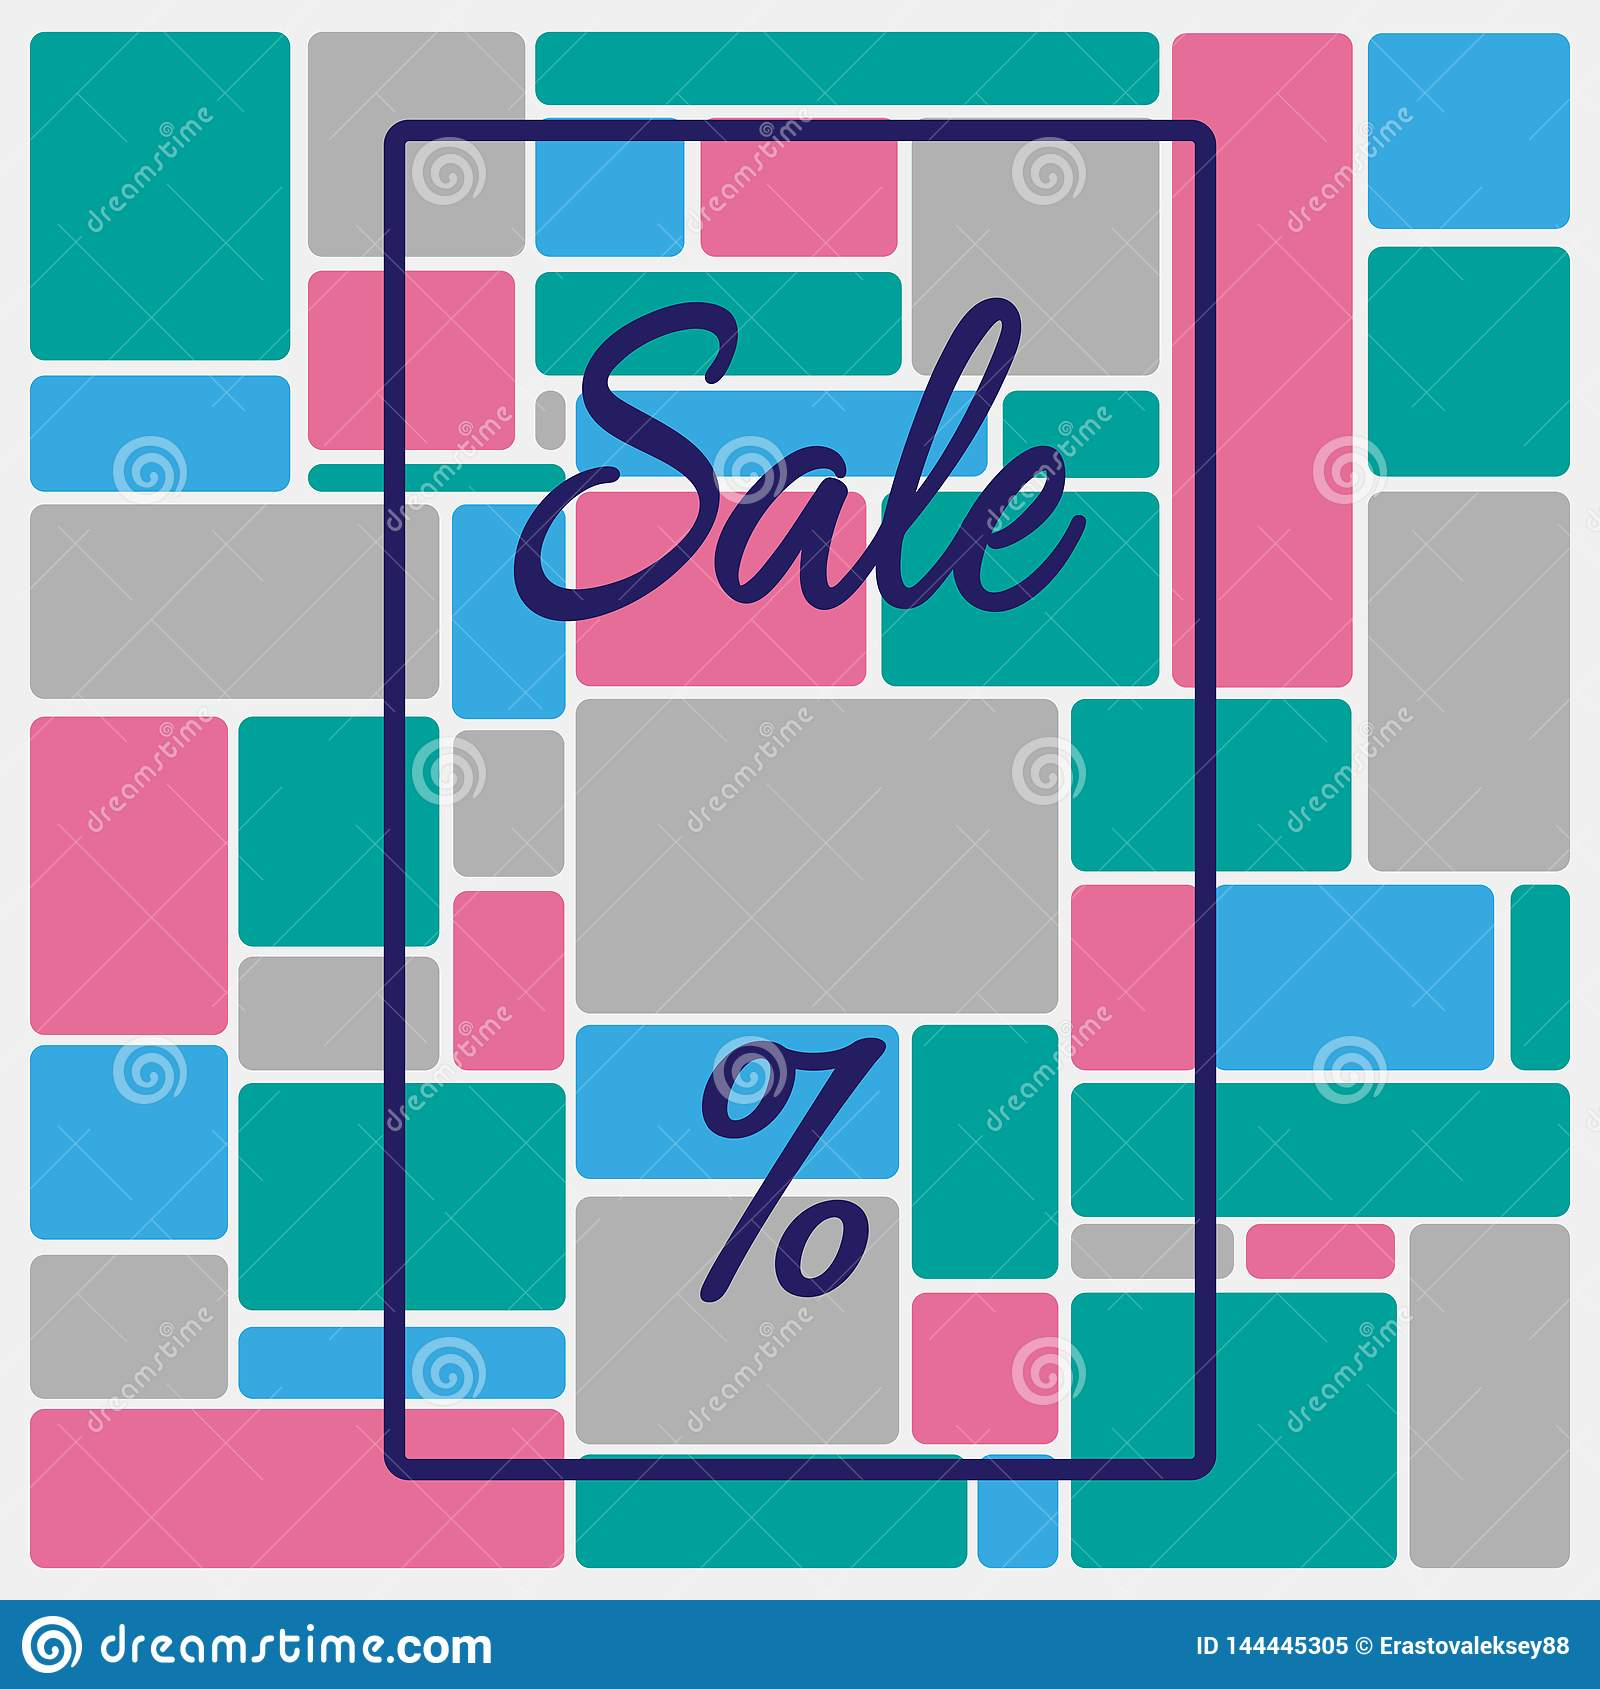 Square background with frame, text Sale and percent sign. Template for advertising. Vector illustration.